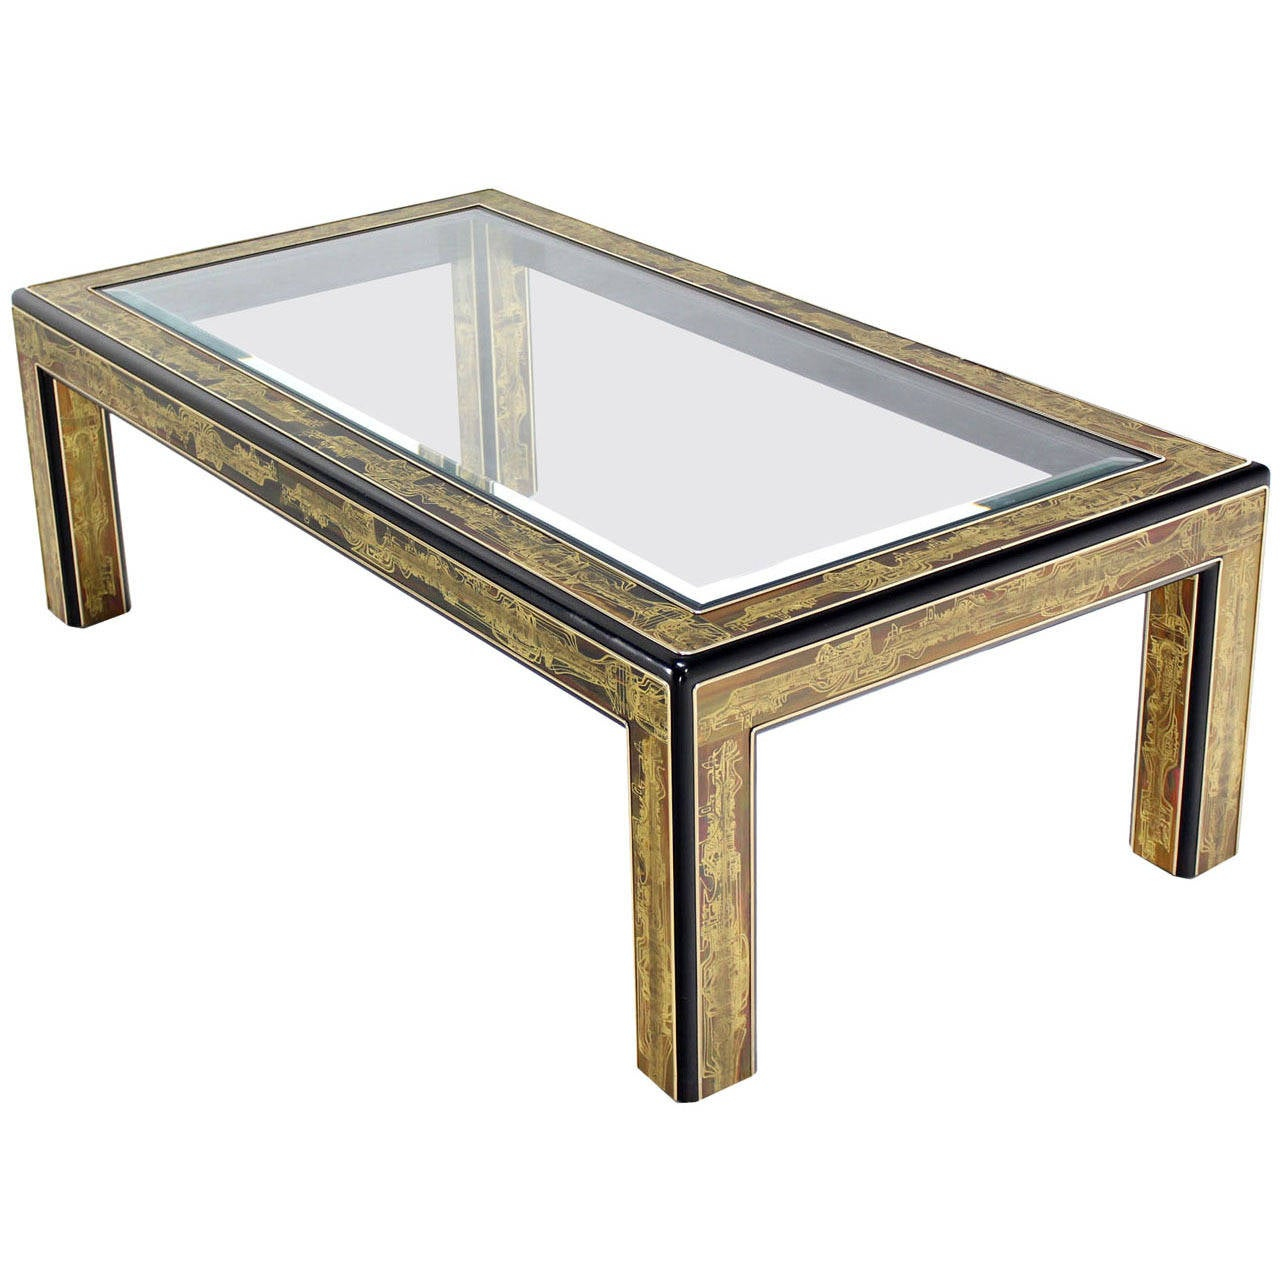 Rectangular Glass-Top Brass And Wood Base Coffee Table By